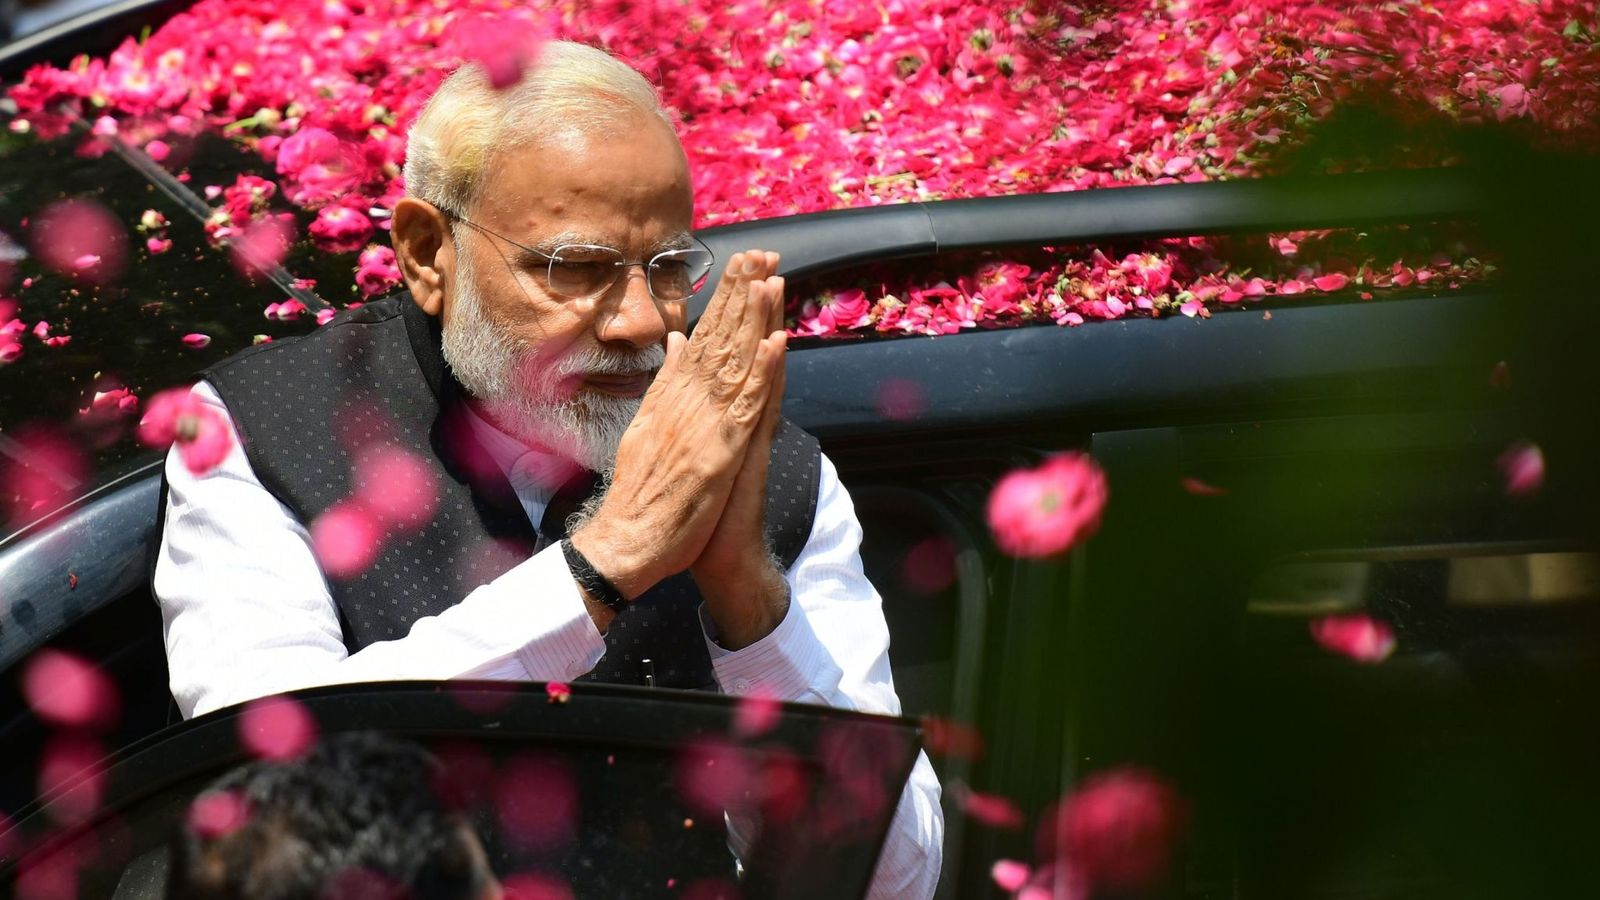 With the Biggest Repeat Mandate in the Past 48 years, the People's Pradhan Sewak is ready to Serve India again